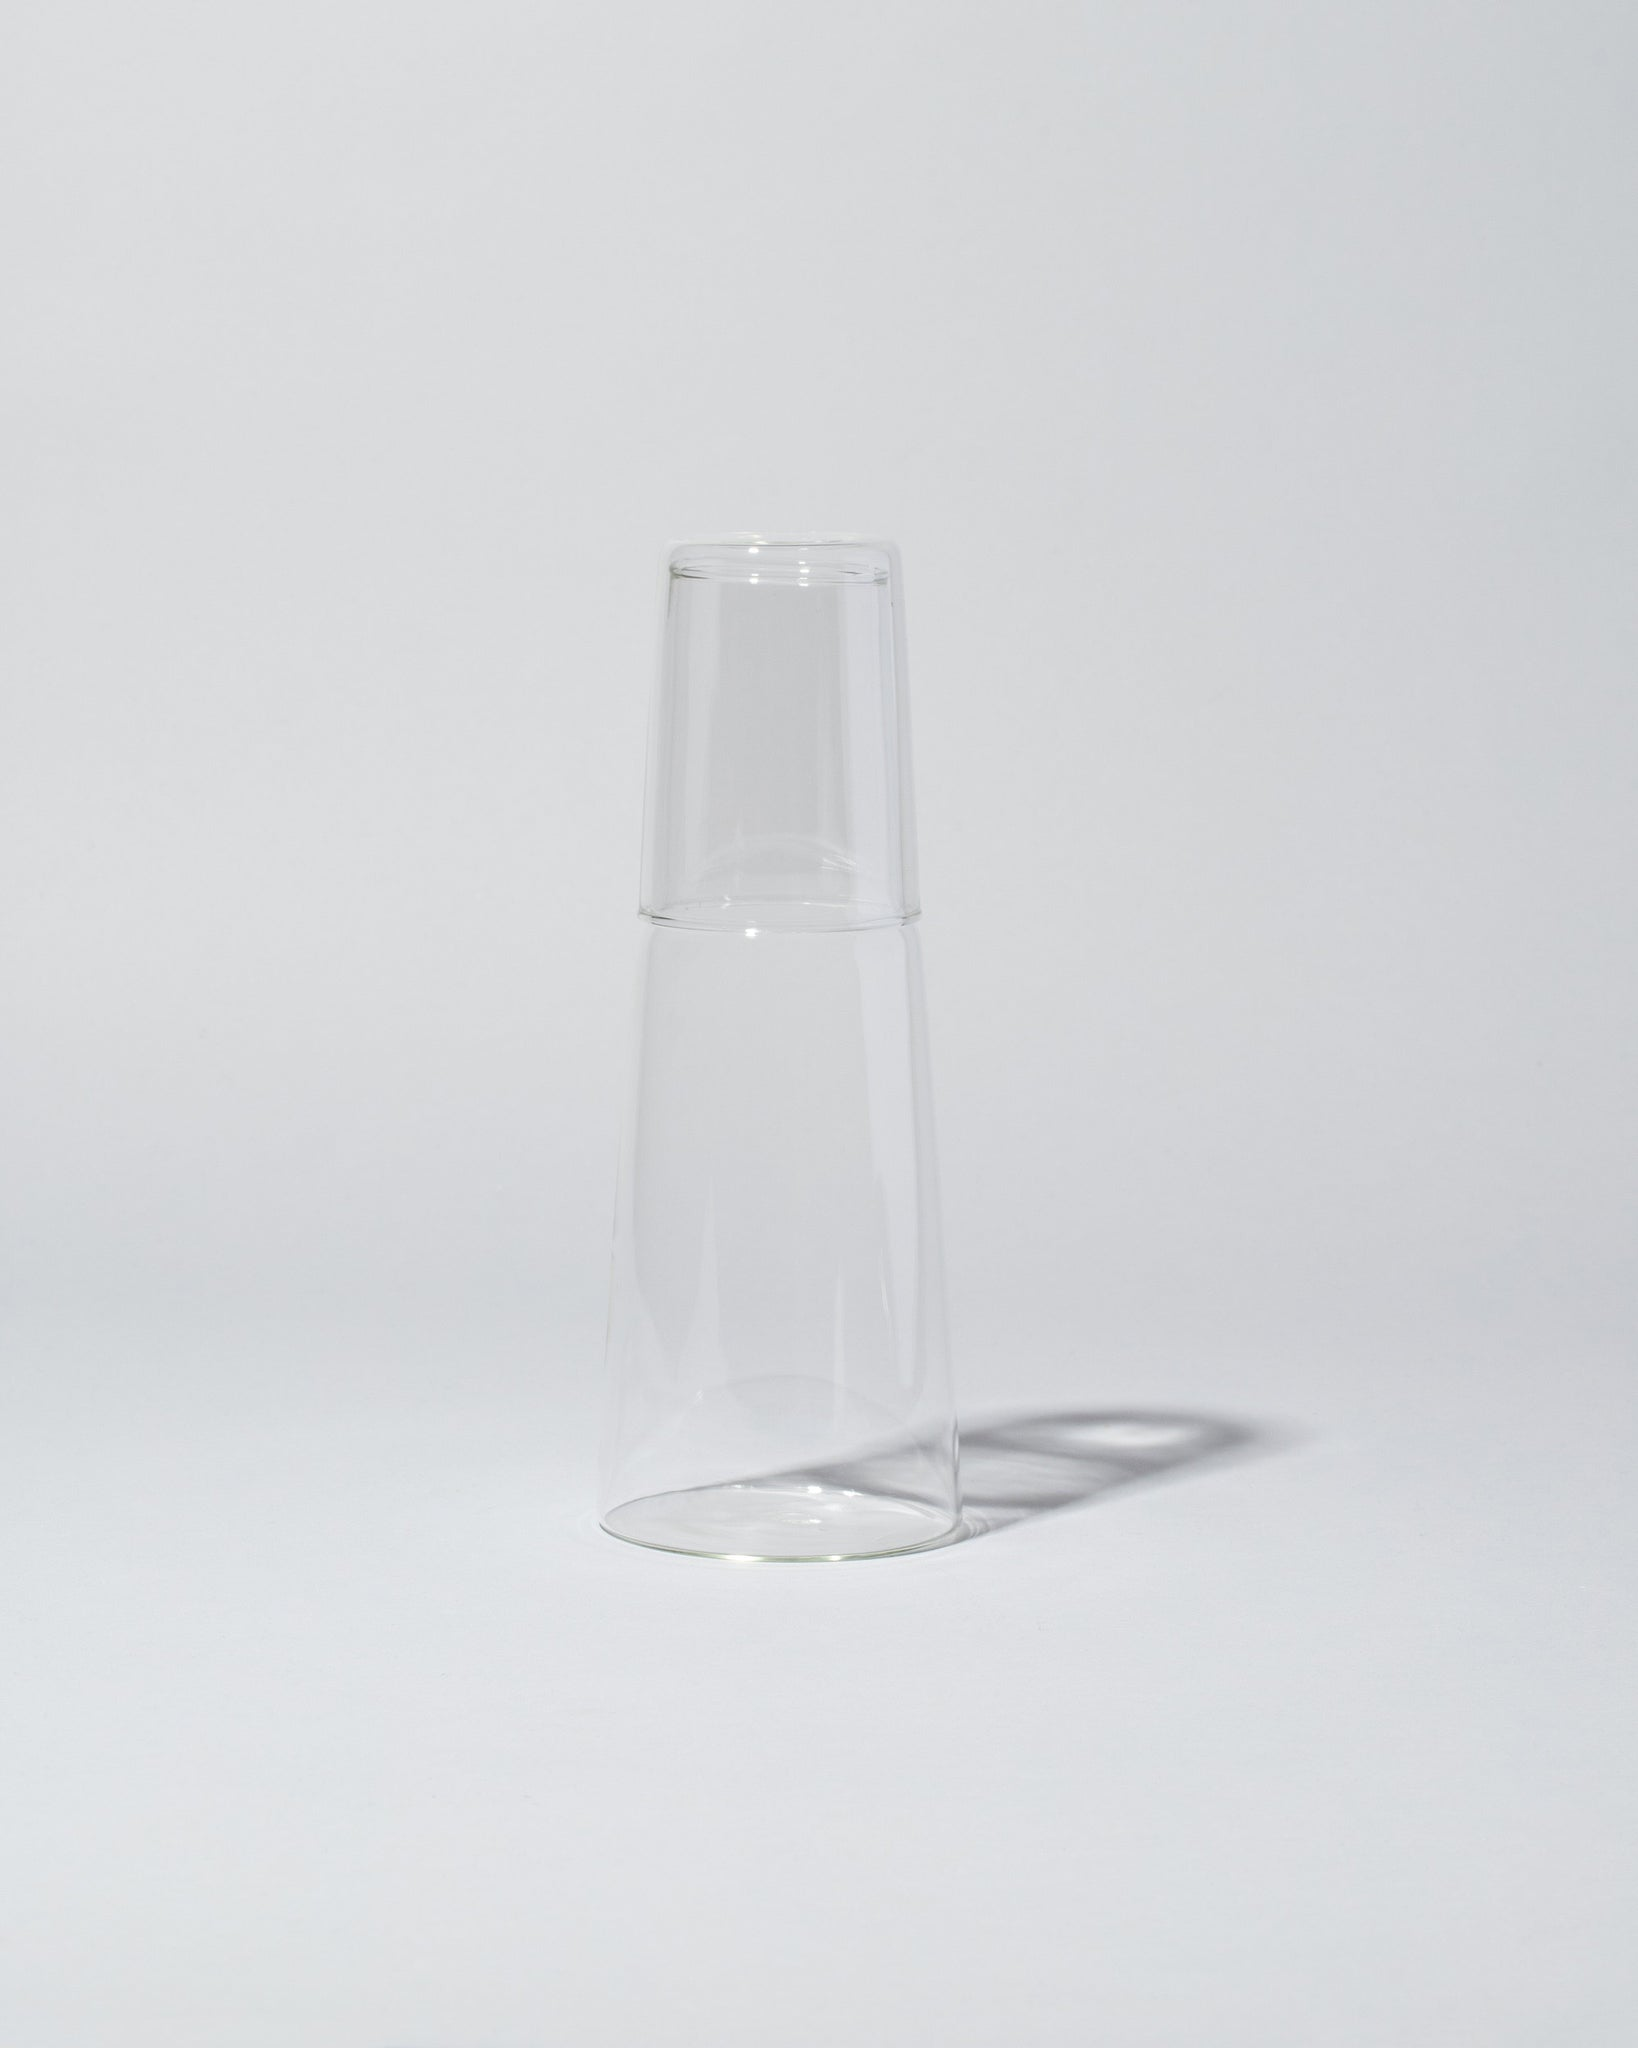 Ichendorf Milano Torre Night Bottle and Glass stacked